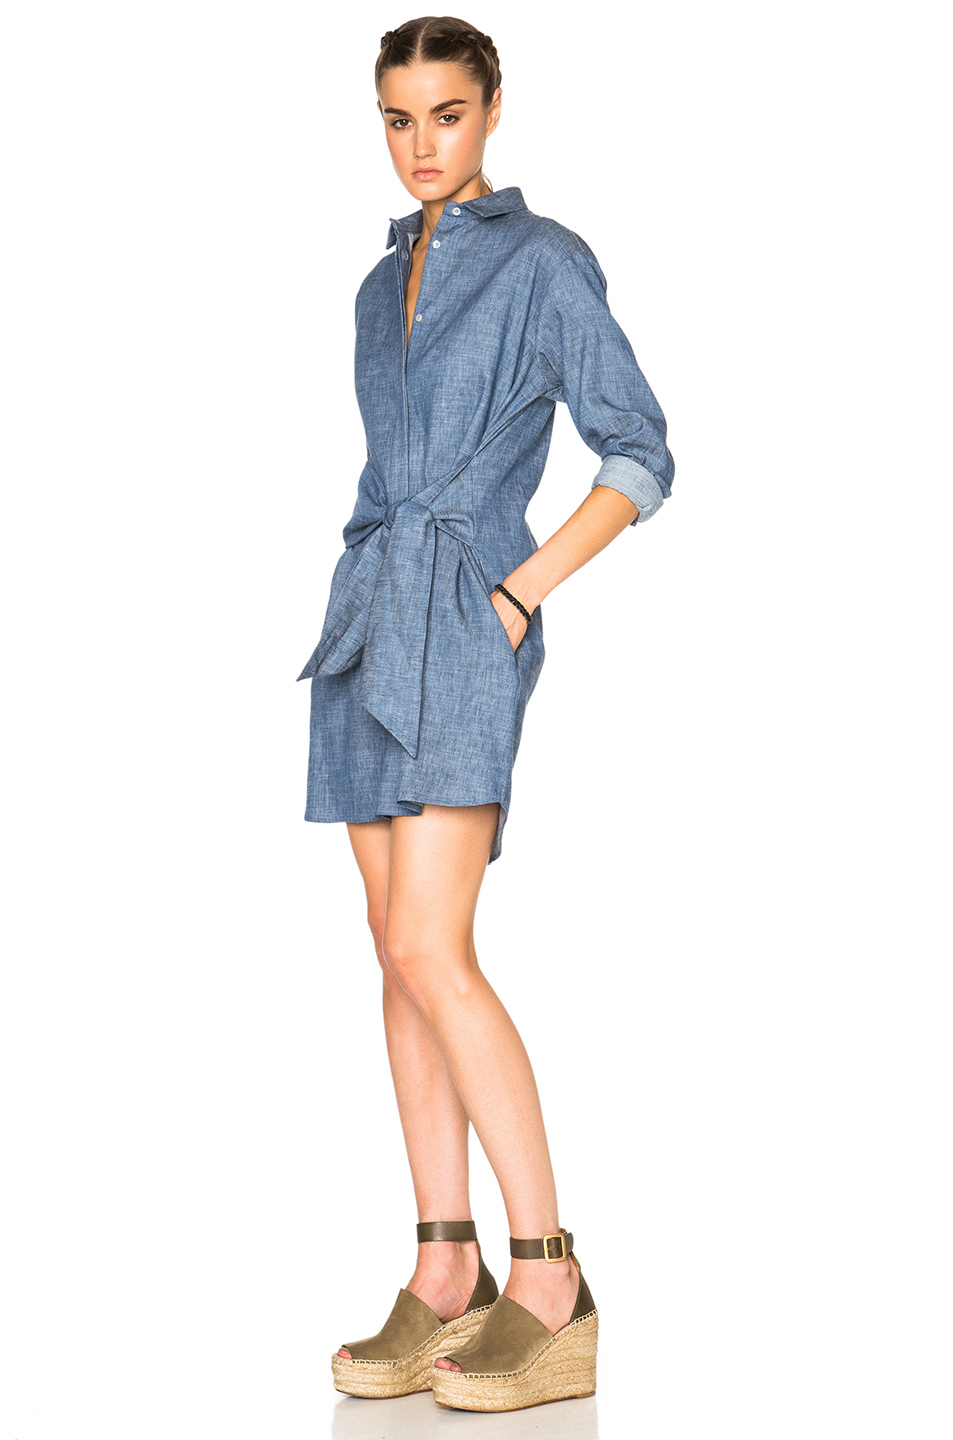 Msgm chambray shirt dress in blue lyst for Blue chambray shirt women s